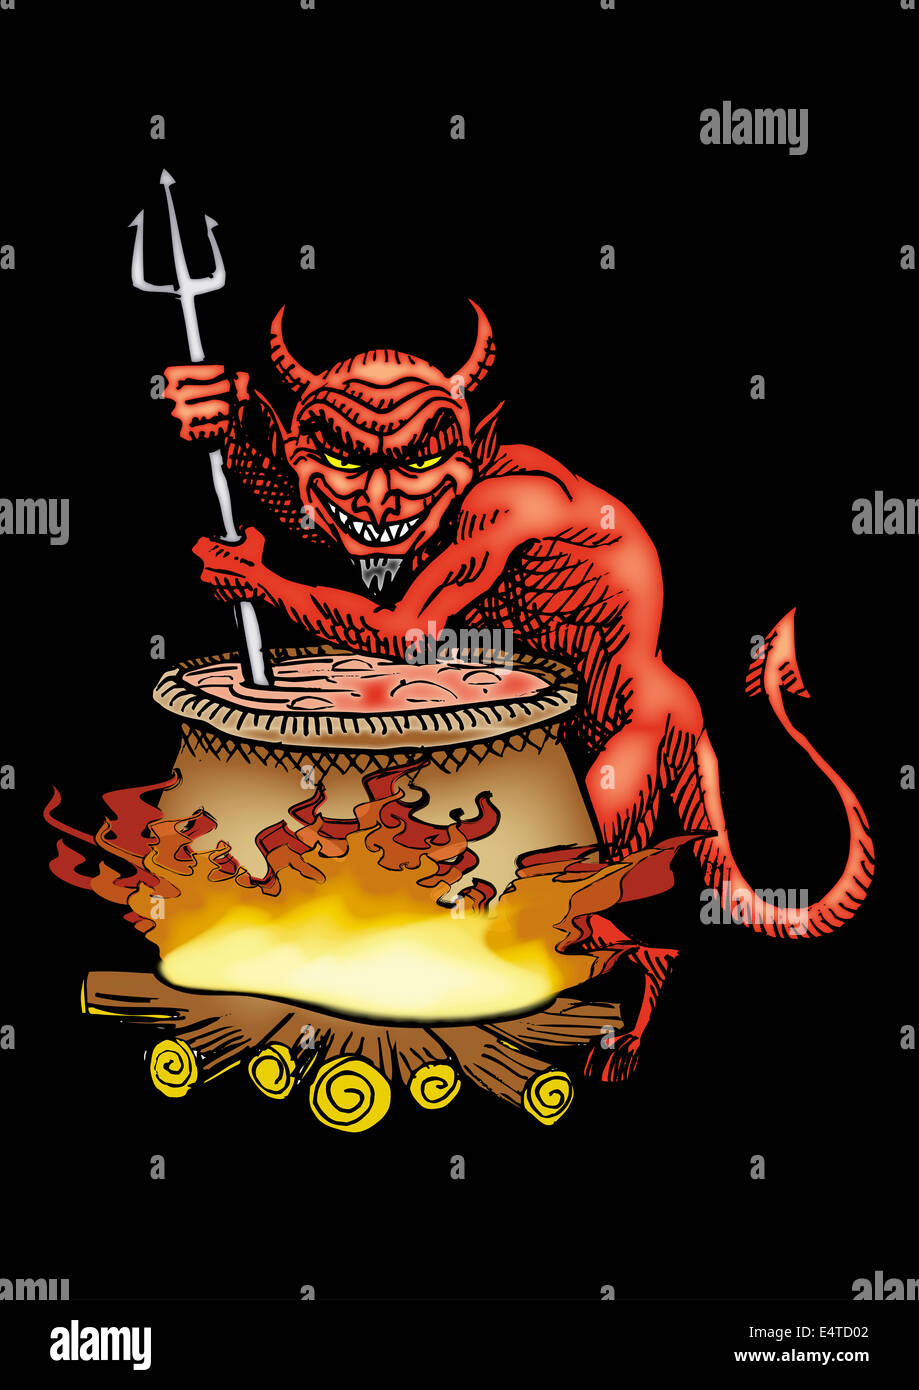 Red devil mixing big boiling pot - Stock Image